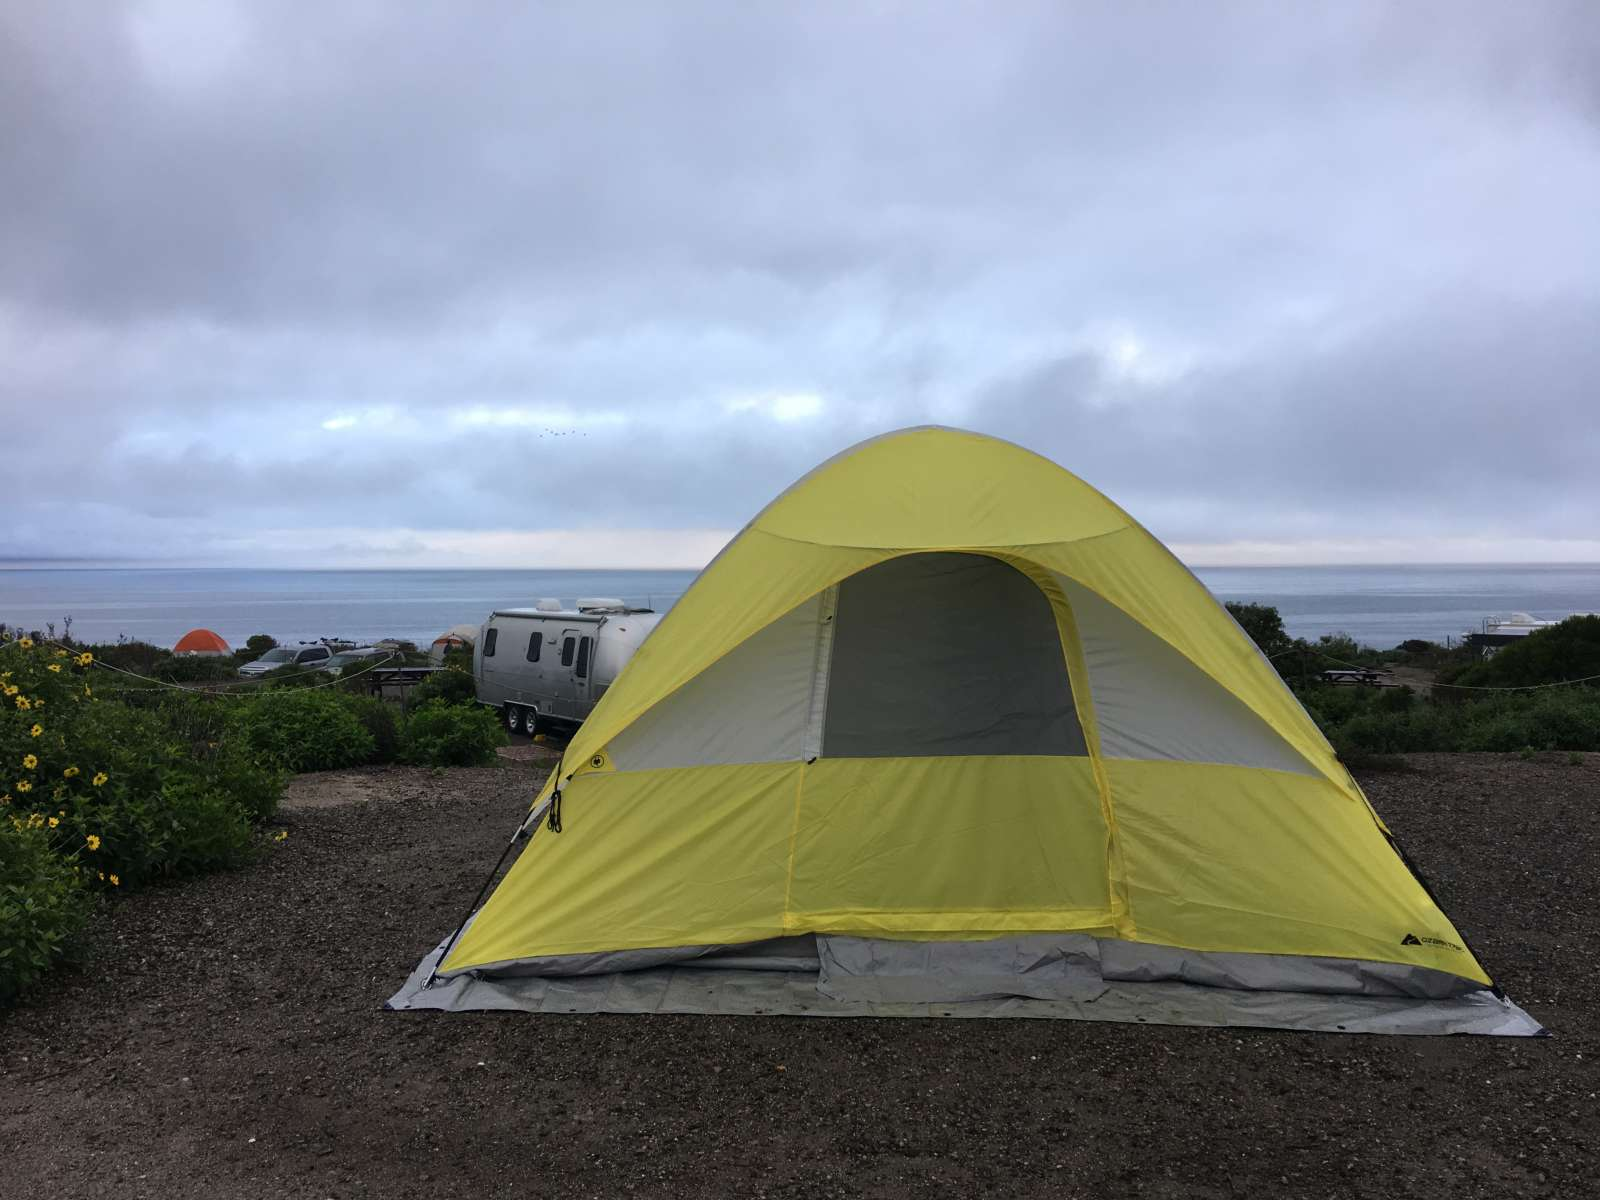 Moro Campground, Crystal Cove, CA: 10 Hipcamper Reviews And 56 Photos